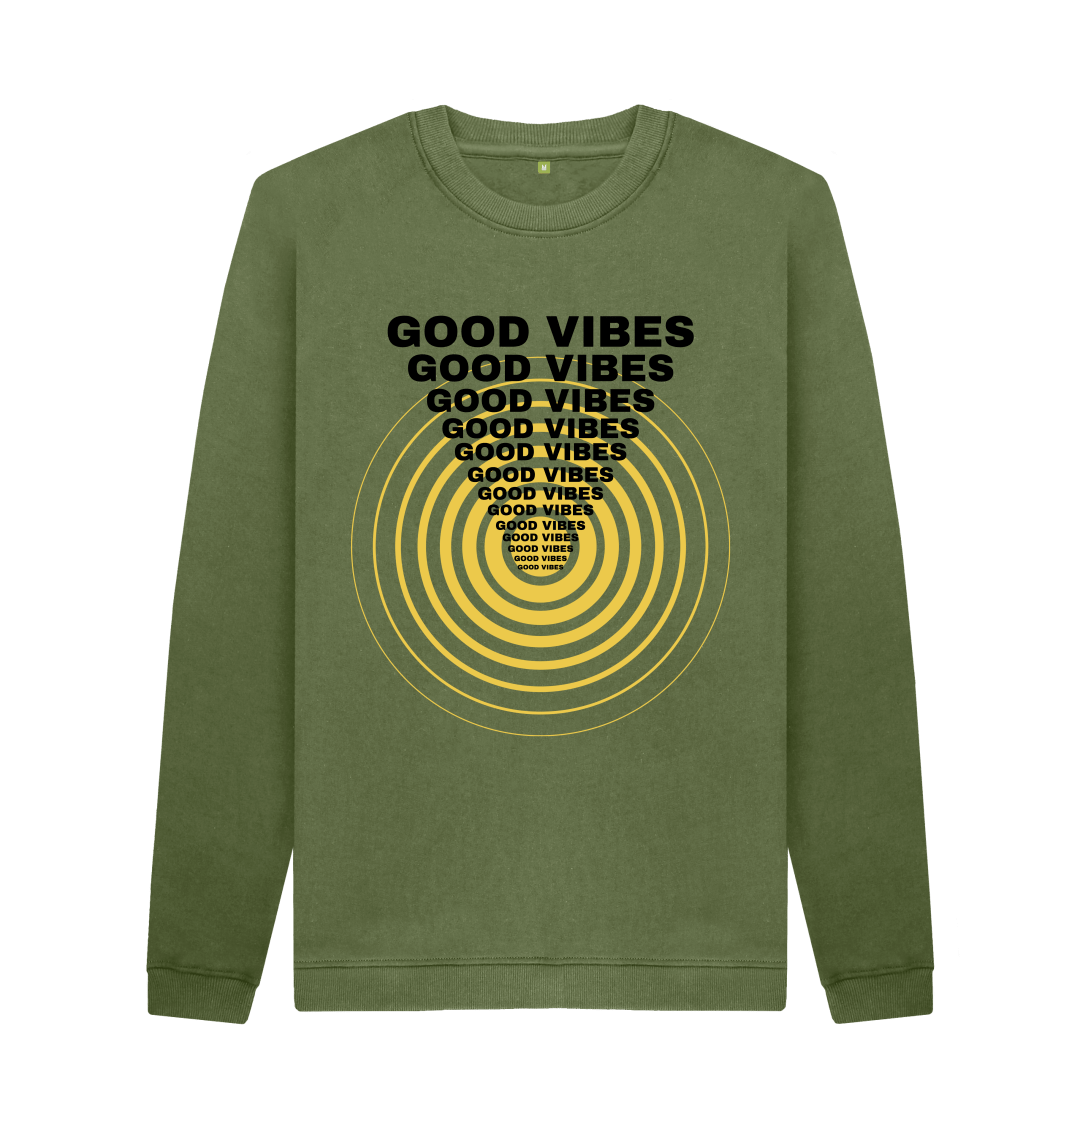 Gifts for Men Mens Good Vibes Top Jumper Sweater